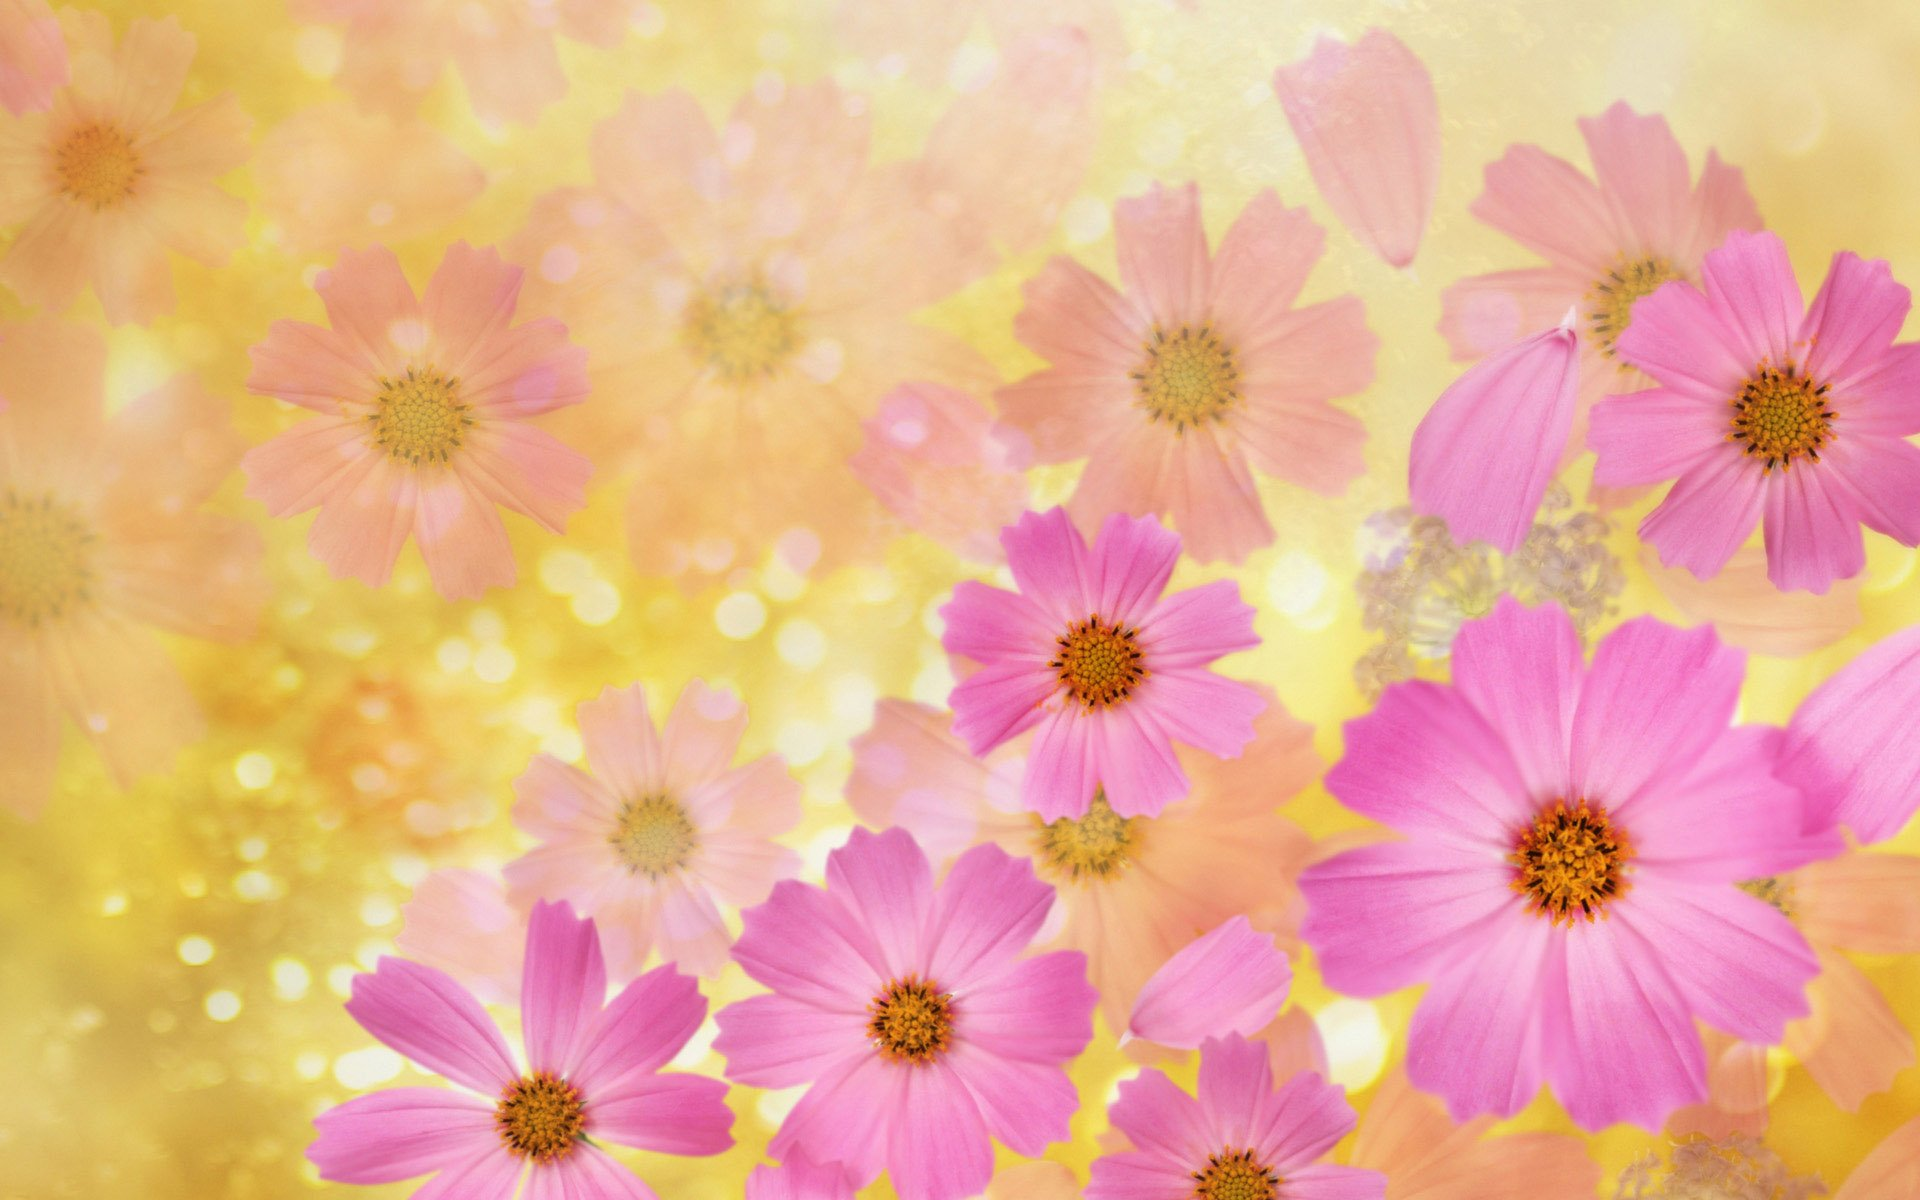 Background Pictures Flowers Free - The Best Flowers Ideas